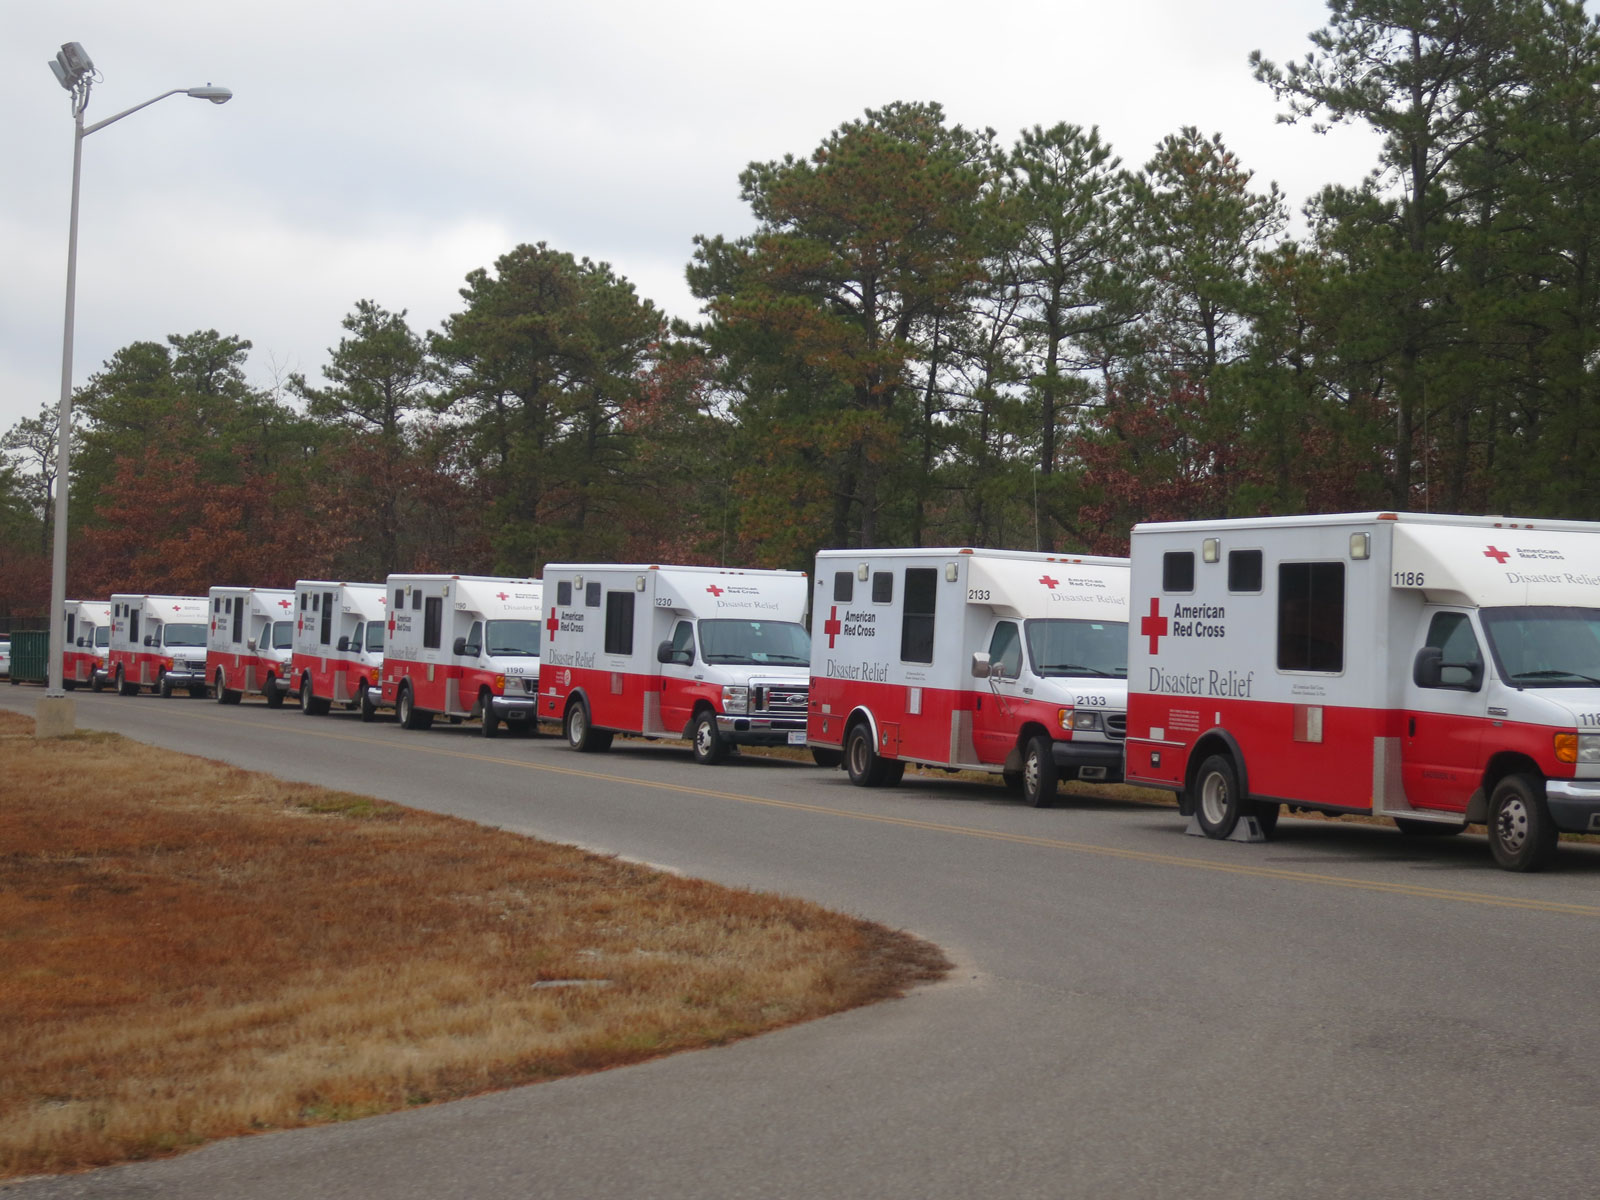 Early on Thanksgiving morning, some of the 43 ERVs lined up to receive their day's supply of hot food at K-3.  Some trucks go to shelters, some to street corners, and others make set rounds. Other ERVs left from two other kitchen locations to serve the entire State.